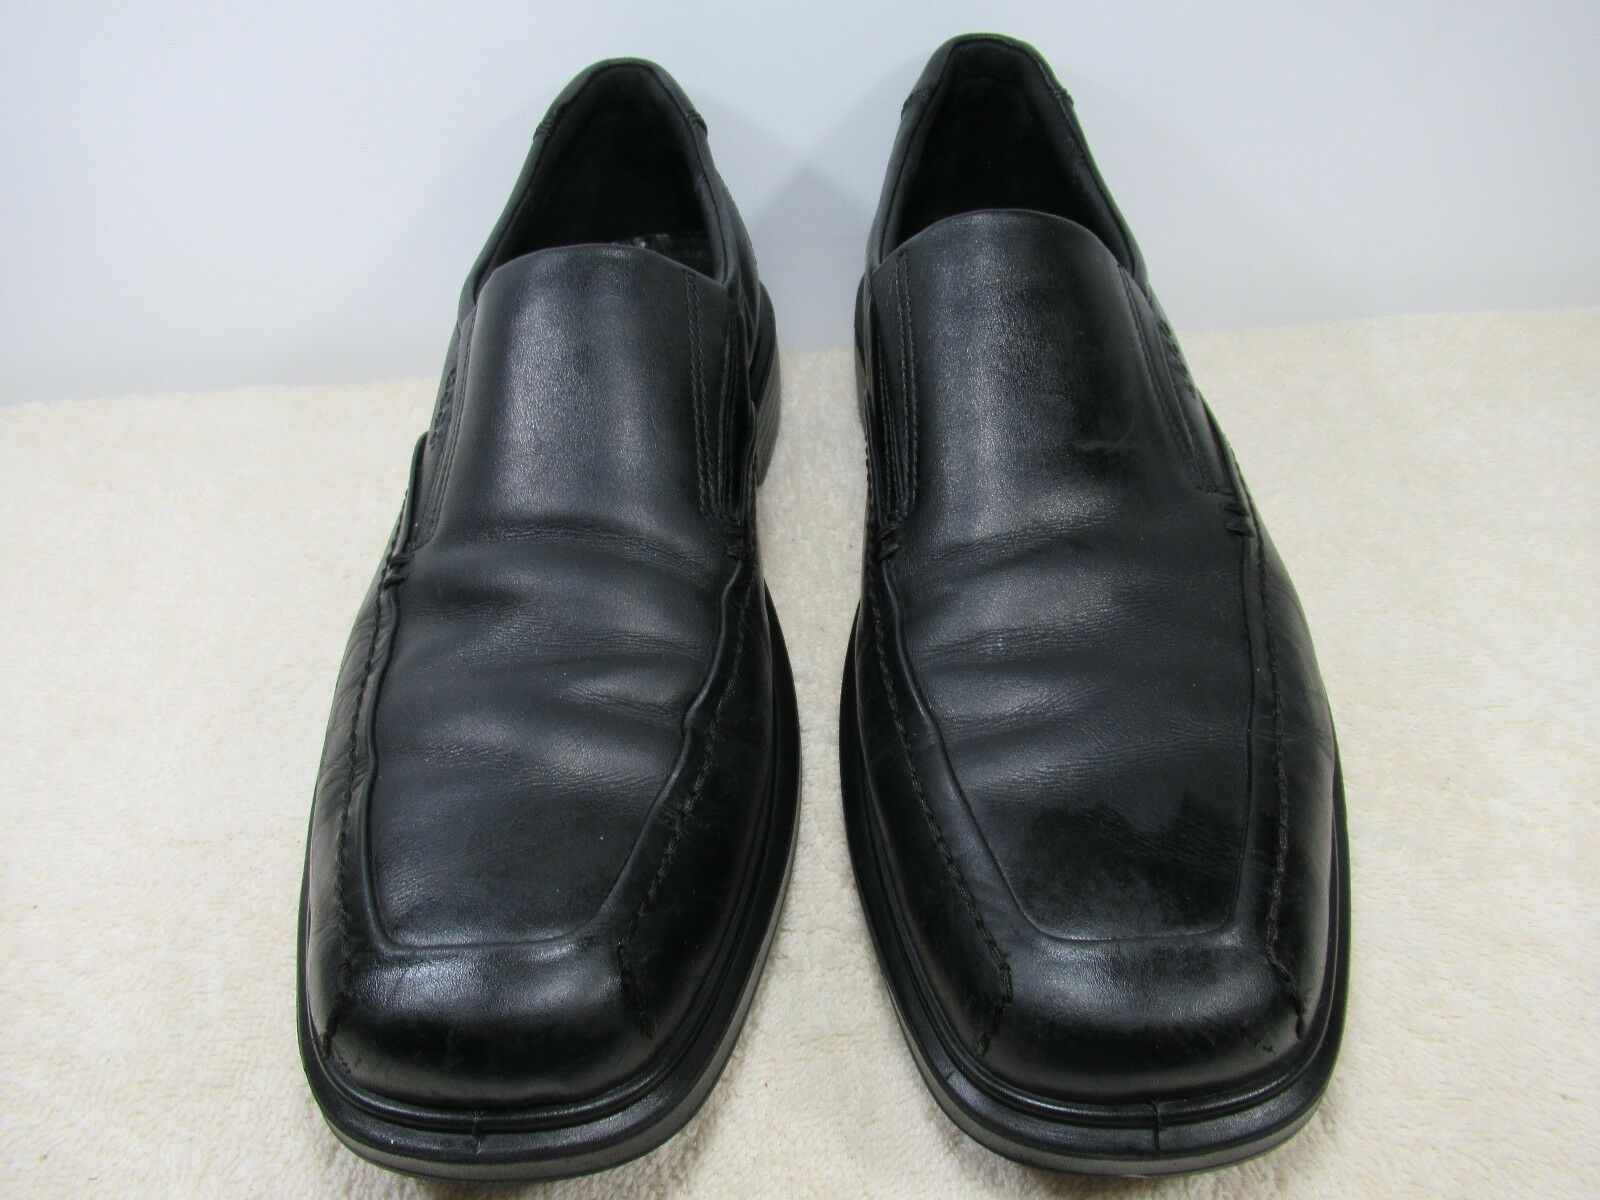 d3c3625b270324 ECCO SHOES BLACK BLACK BLACK GENUINE LEATHER UPPER SIZE USA 12.5 MADE IN  SLOVAKIA 1a0f90